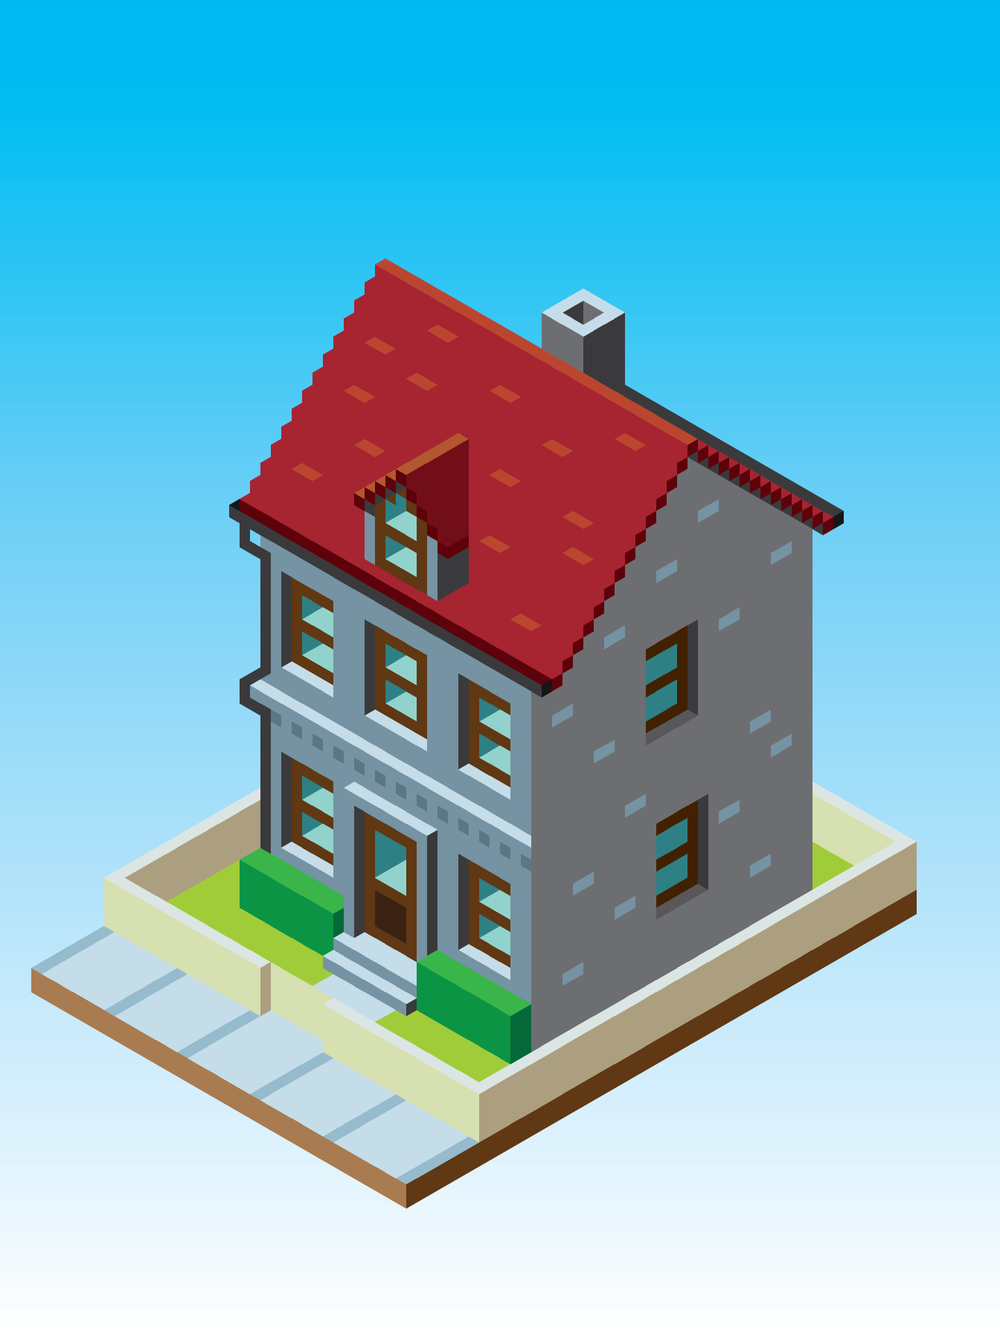 isometric_house_test01.png